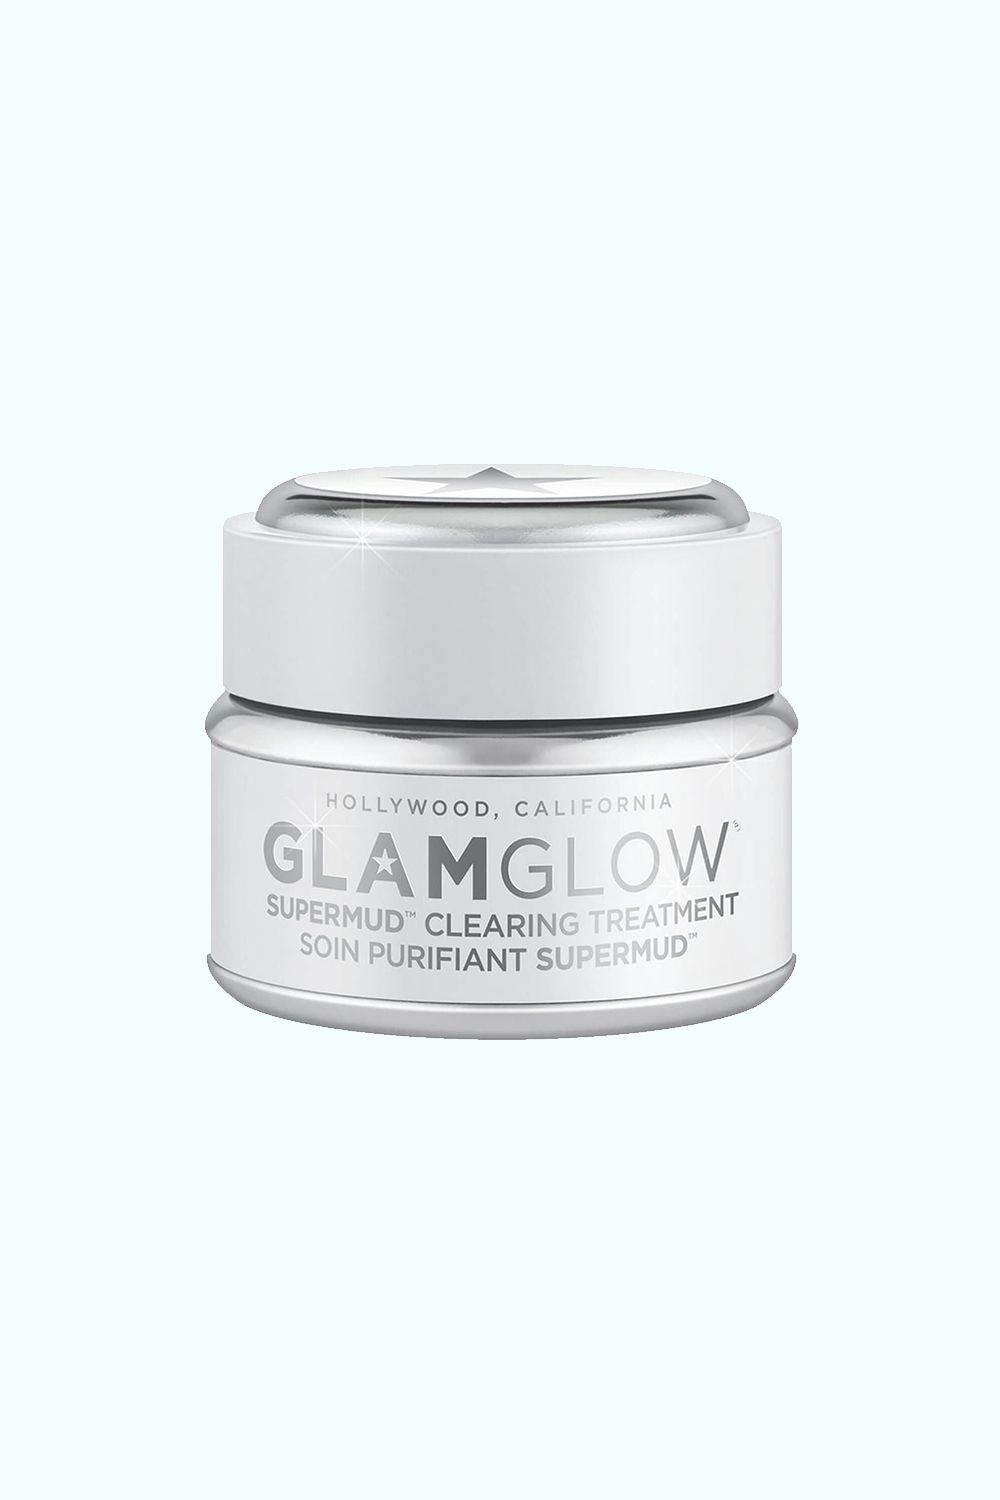 """<p>It's no small wonder that beauty girls and masking fiends lose their marbles for GLAMGLOW's clay masks: this one's a mixture of activated charcoal and mud that helps to suck up dirt and excess oil. It even works as a spot treatment on those <a href=""""http://www.marieclaire.com/beauty/a25717/how-to-get-rid-of-pimples-overnight/"""" target=""""_blank"""" data-tracking-id=""""recirc-text-link"""">rogue zits</a>&#x3B; pat a little bit over your blemish and let the mask work its magic overnight.&nbsp&#x3B;</p><p><strong data-redactor-tag=""""strong"""" data-verified=""""redactor"""">$69&#x3B; <a href=""""http://www.sephora.com/clear-improvement-active-charcoal-mask-to-clear-pores-P297524?skuId=1375773&amp&#x3B;icid2=products%20grid:p297524"""" target=""""_blank"""" data-tracking-id=""""recirc-text-link"""">sephora.com</a>.</strong></p>"""